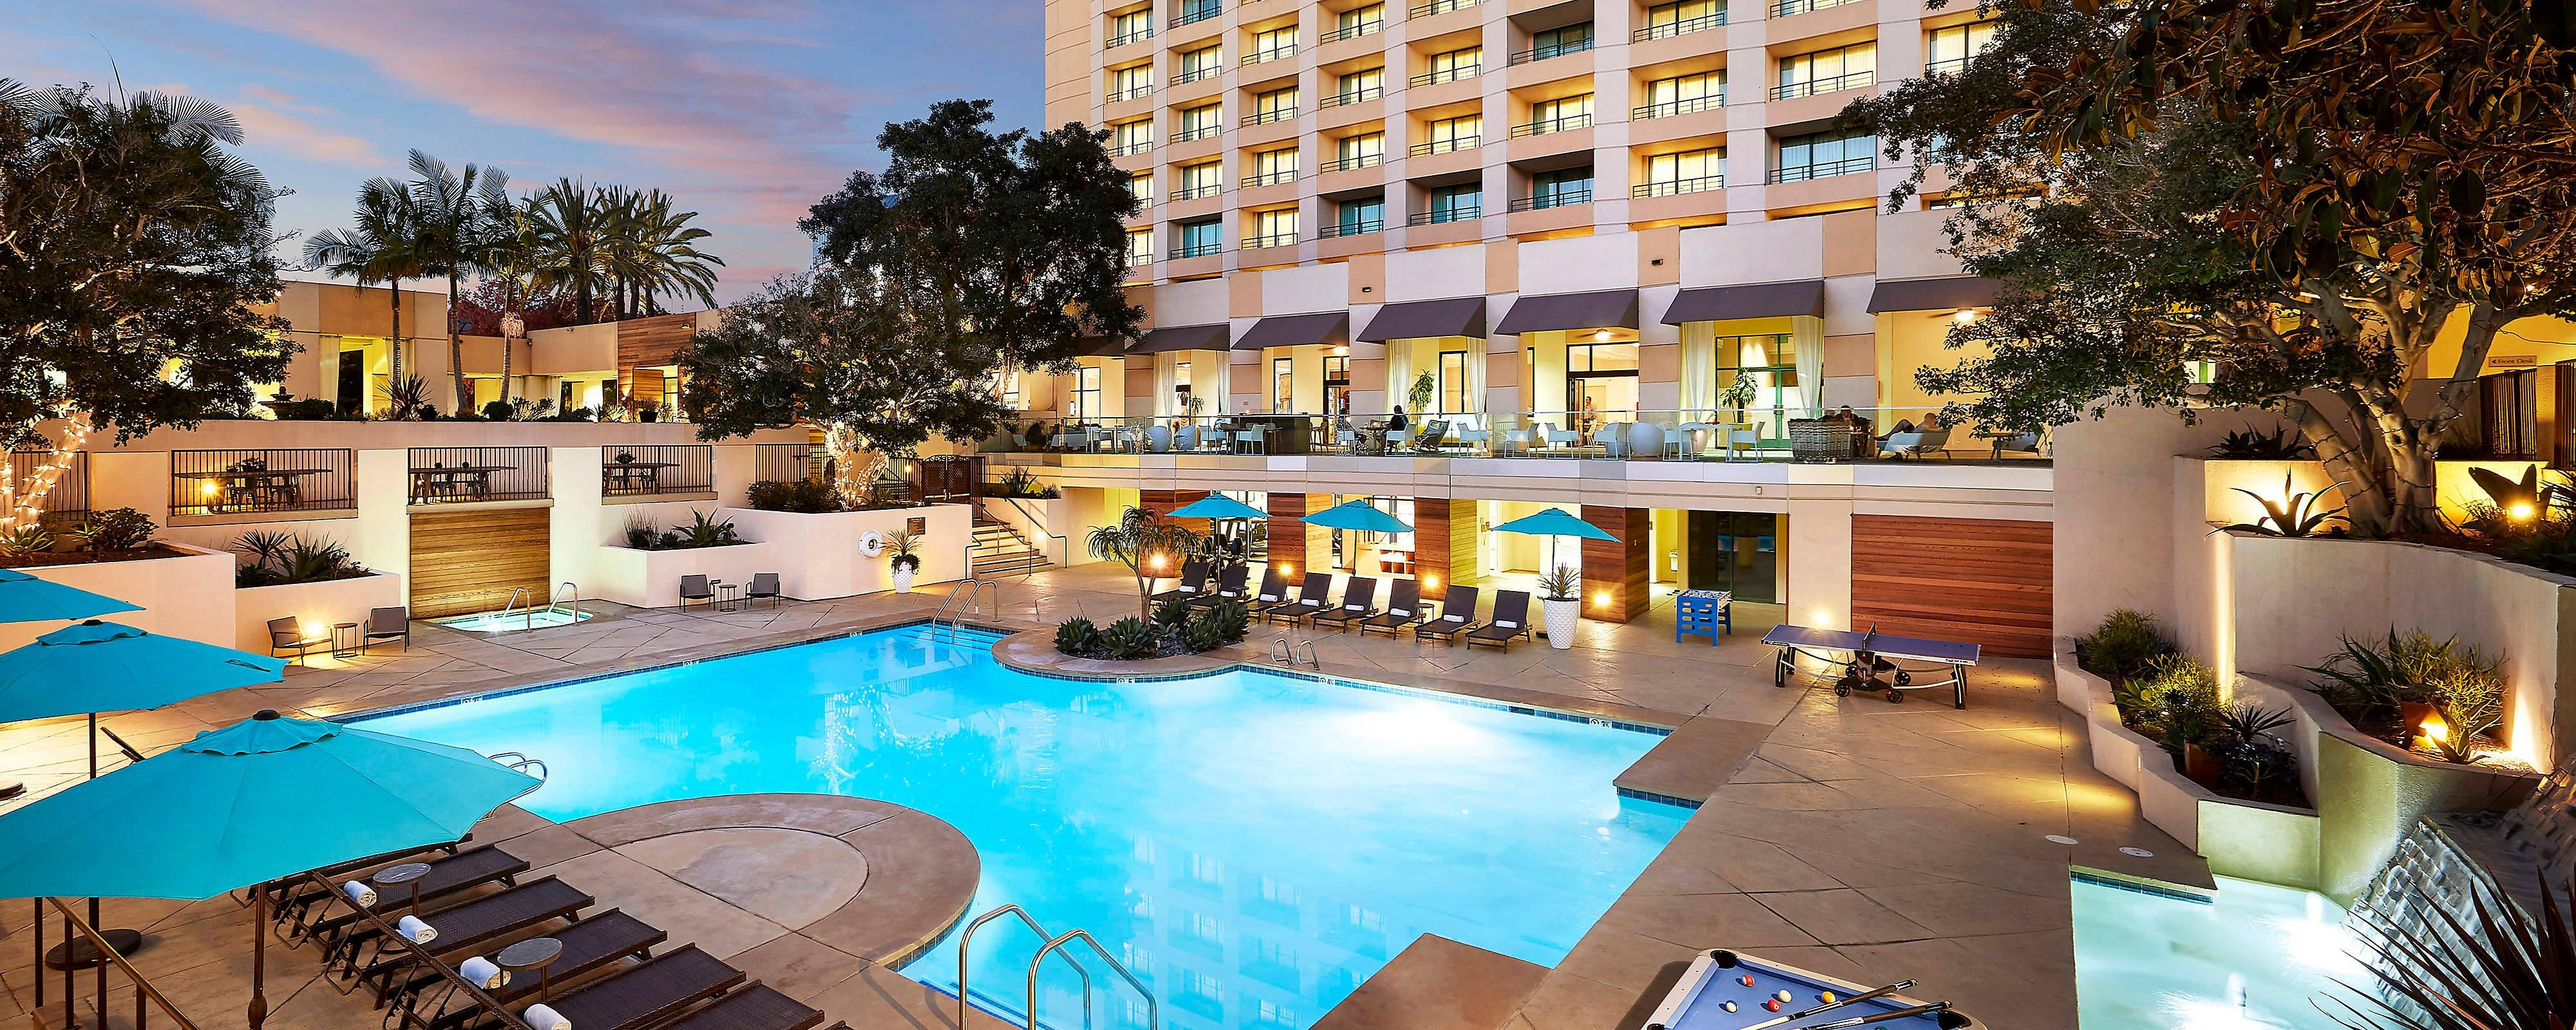 san diego marriott mission valley full service mission valley ca rh marriott com